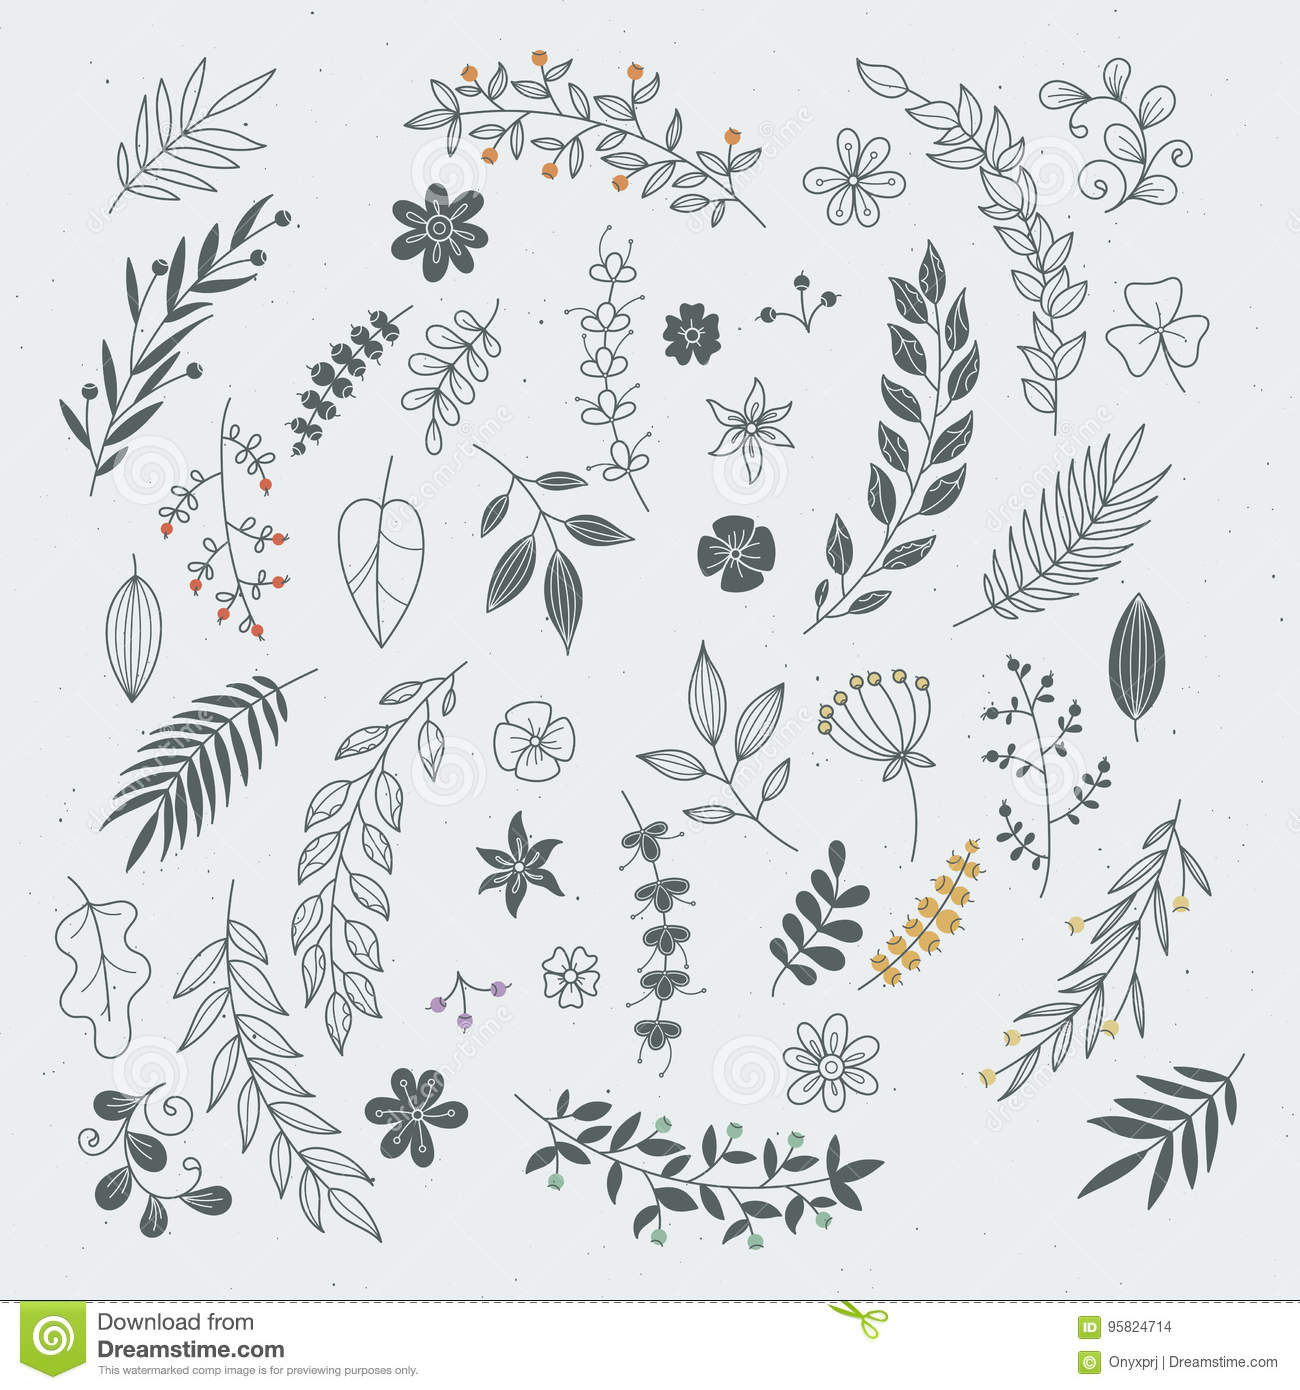 Download Rustic Hand Drawn Ornaments With Branches And Leaves Vector Floral Frames Borders Stock